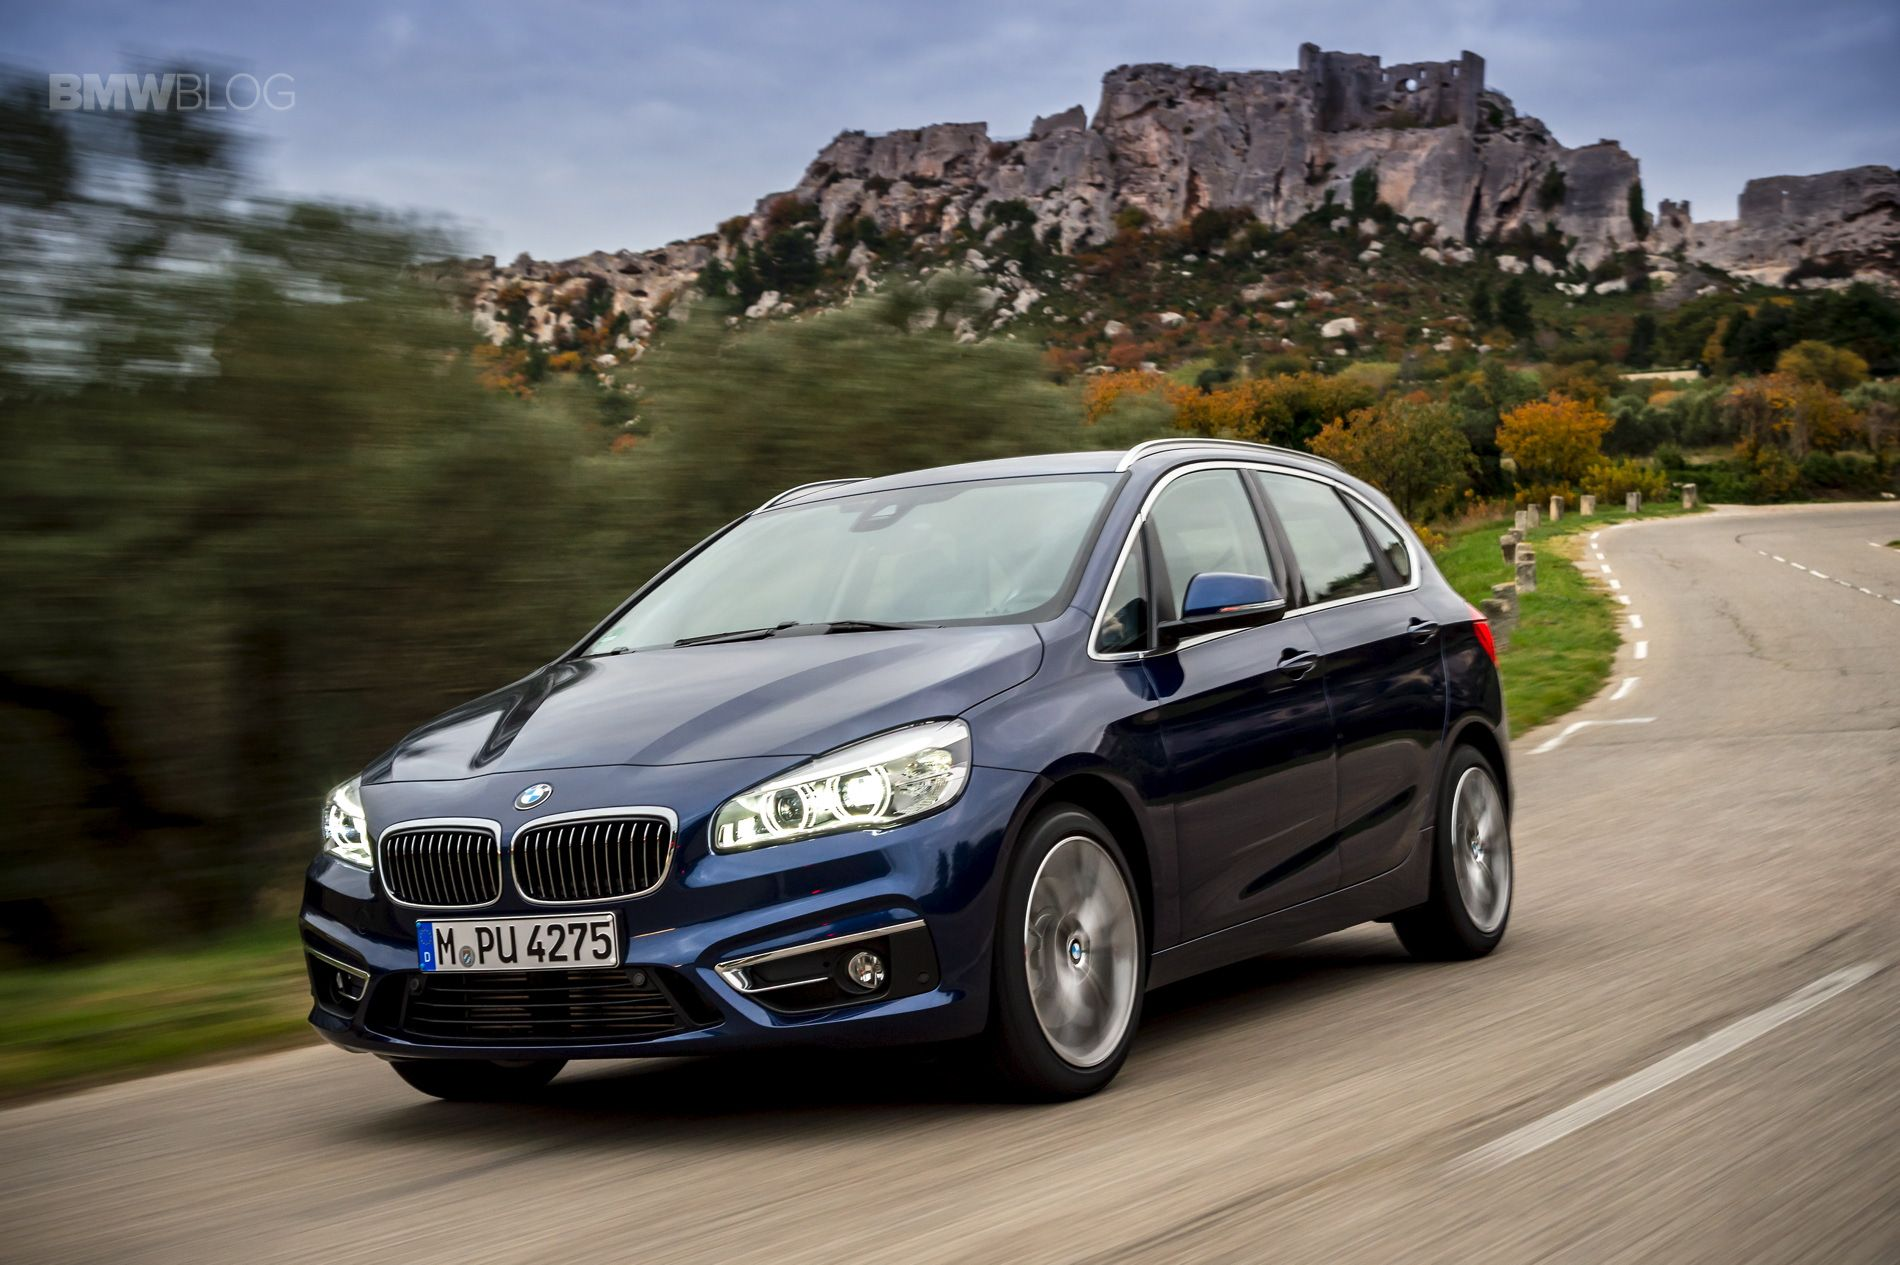 The Bmw 2 Series Active Tourer Is A Success Nobody S Talking About Coches Y Motocicletas Coches Automoviles